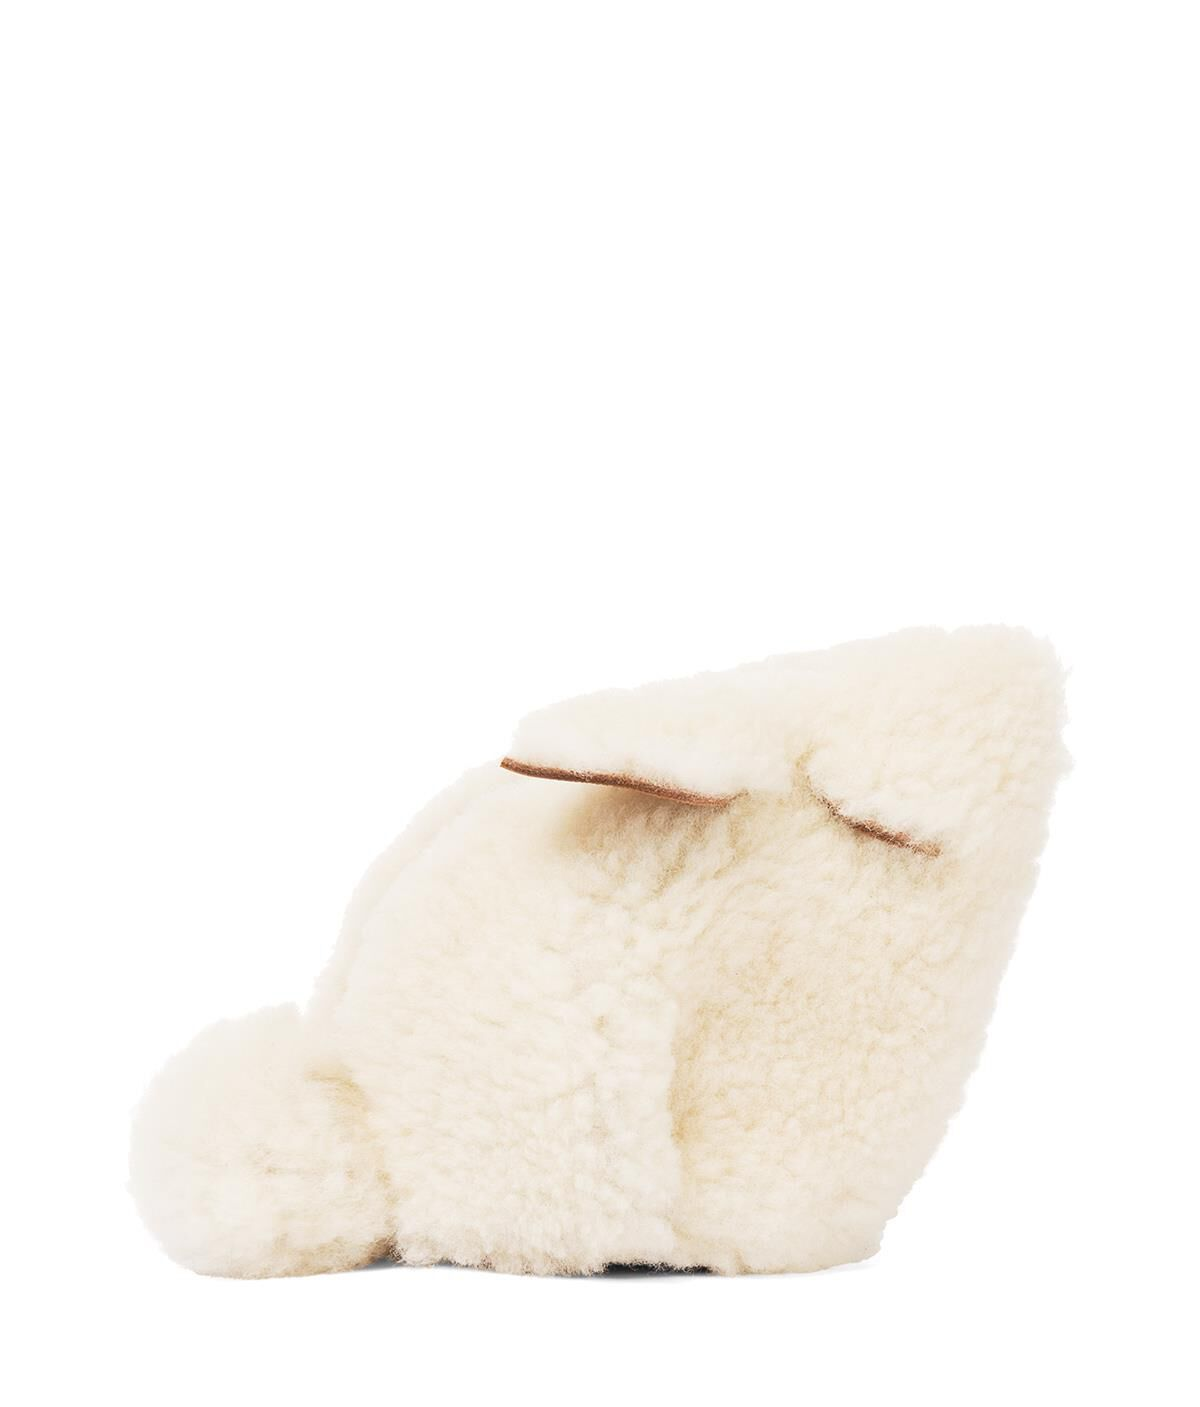 LOEWE Bunny Coin Purse Natural all